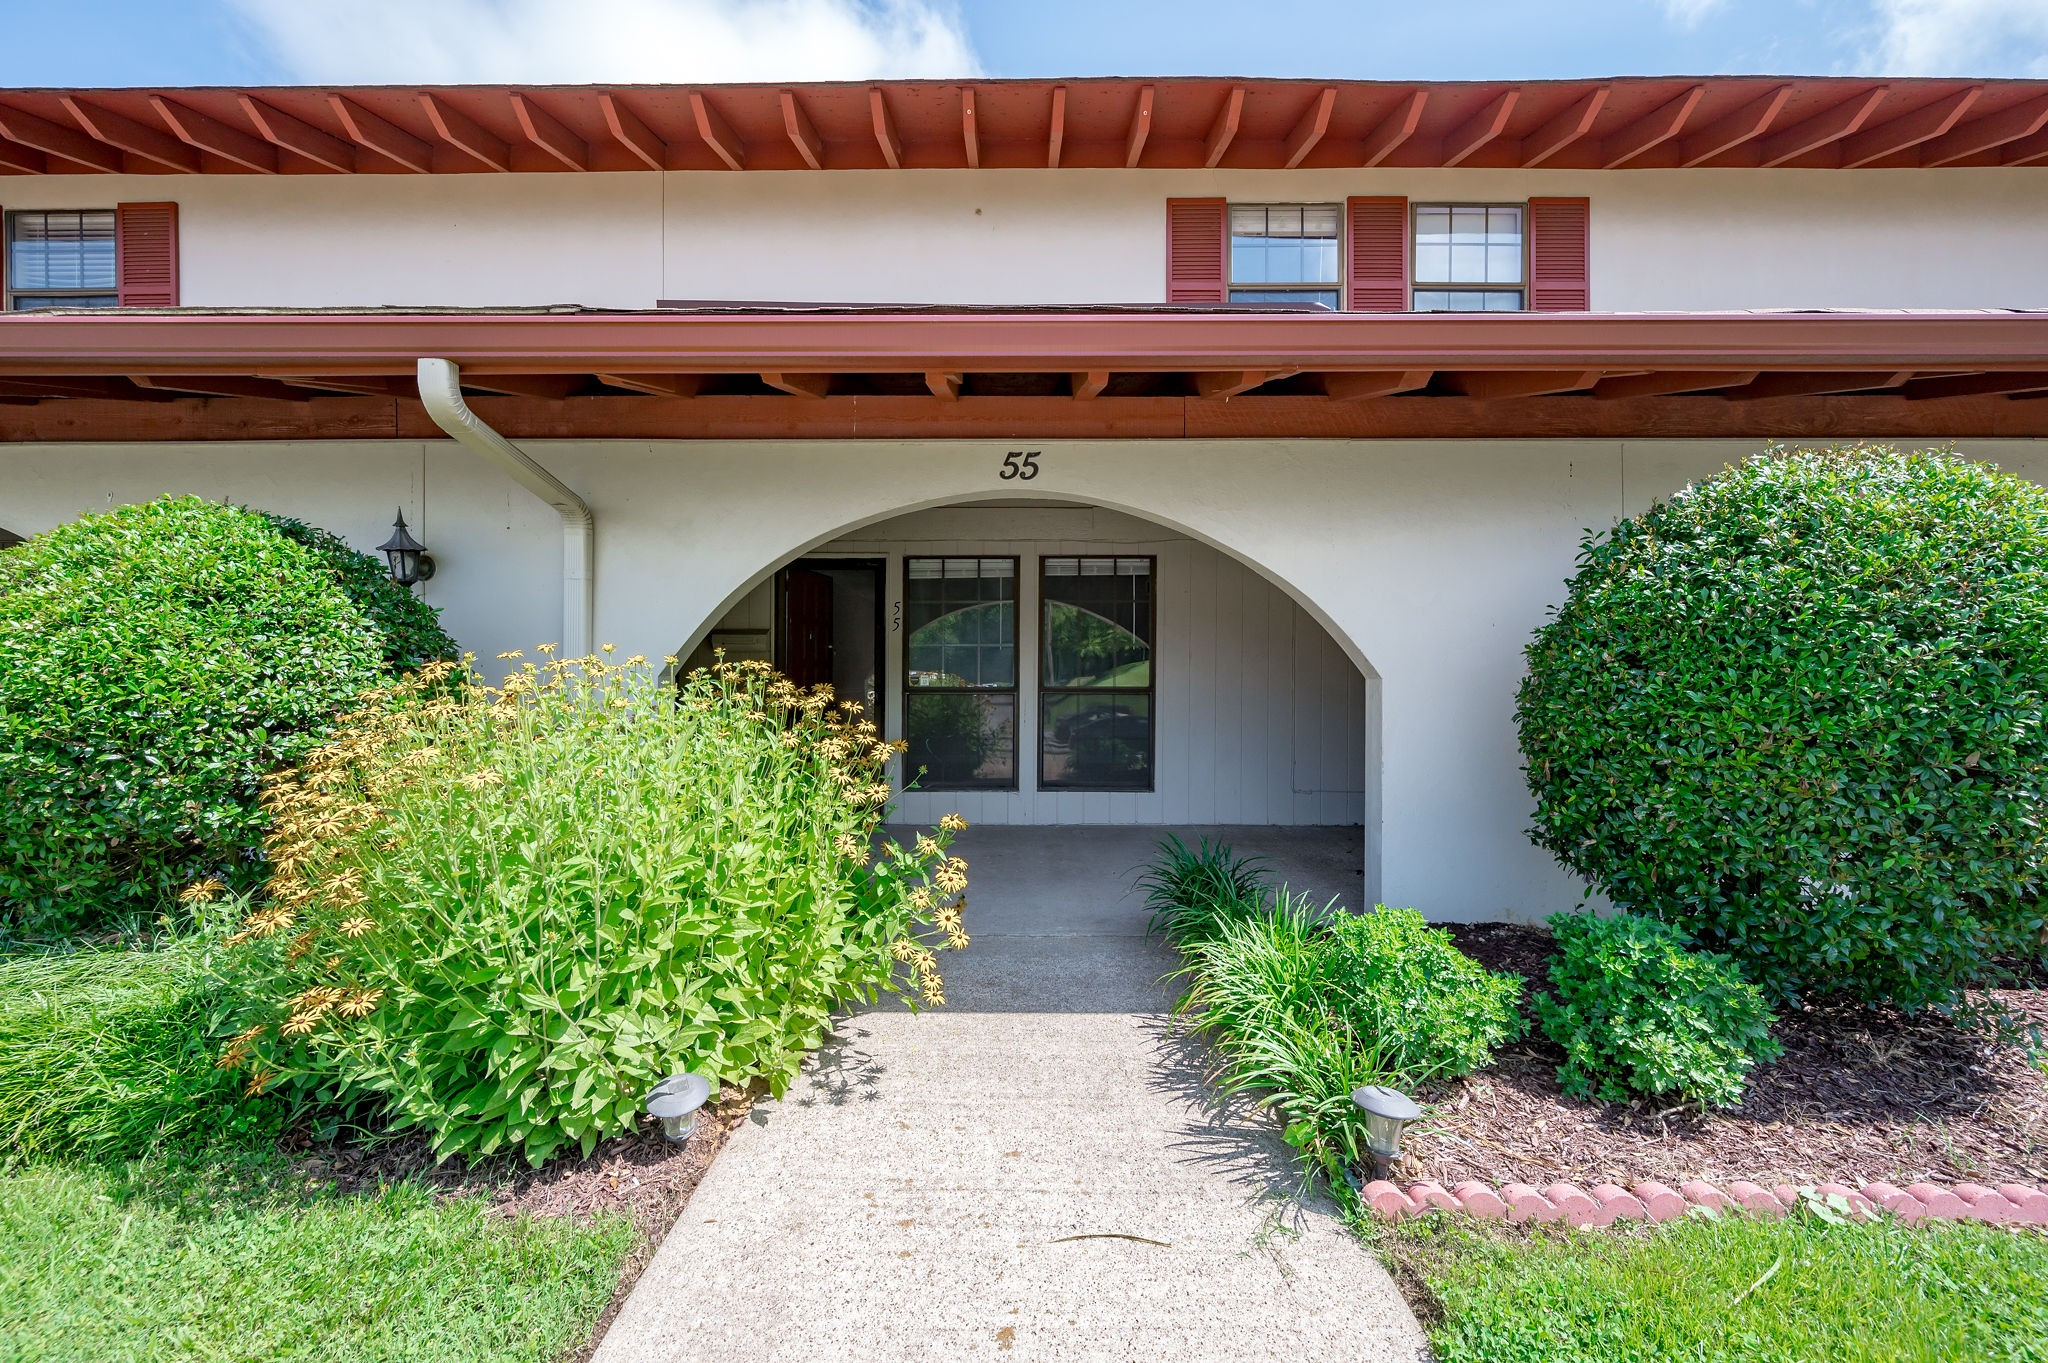 210 Old Hickory Blvd #55 Property Photo - Nashville, TN real estate listing